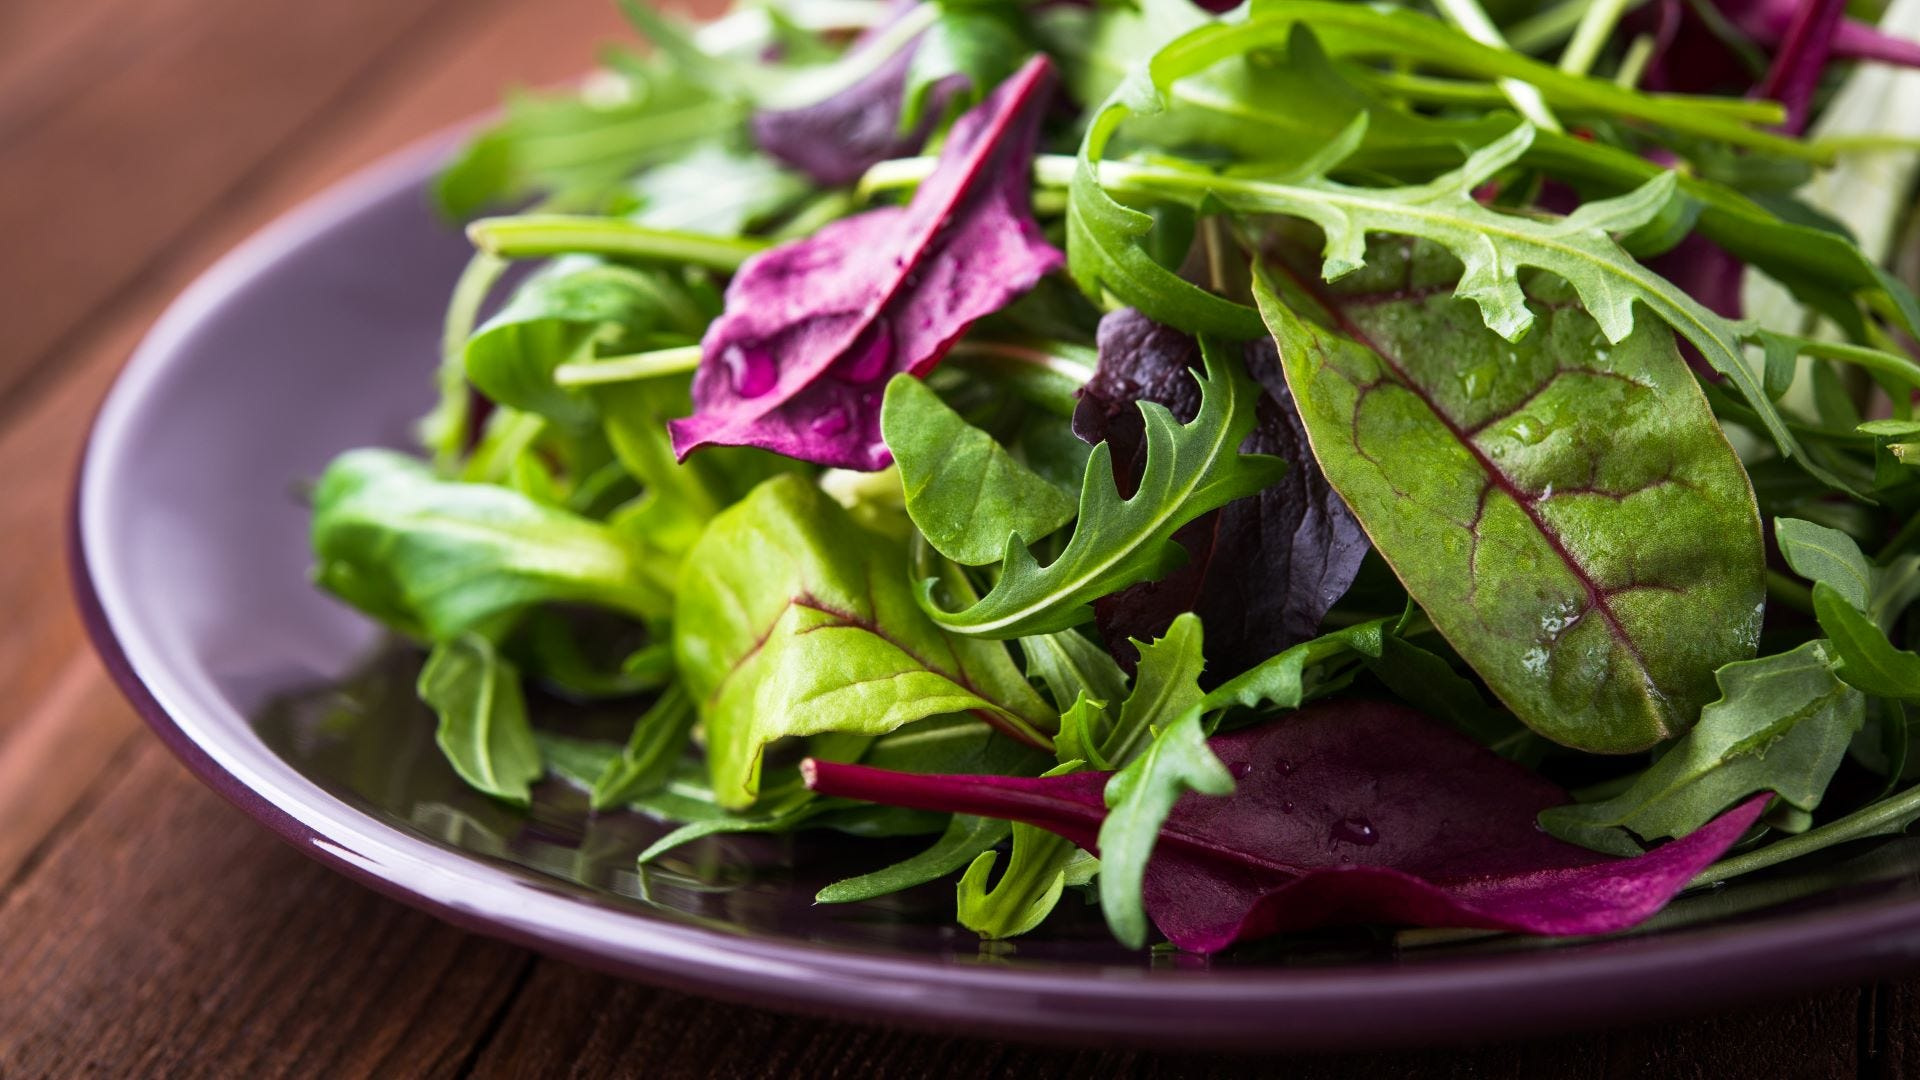 A mixed green salad with arugula, mesclun, and mache on a plate.